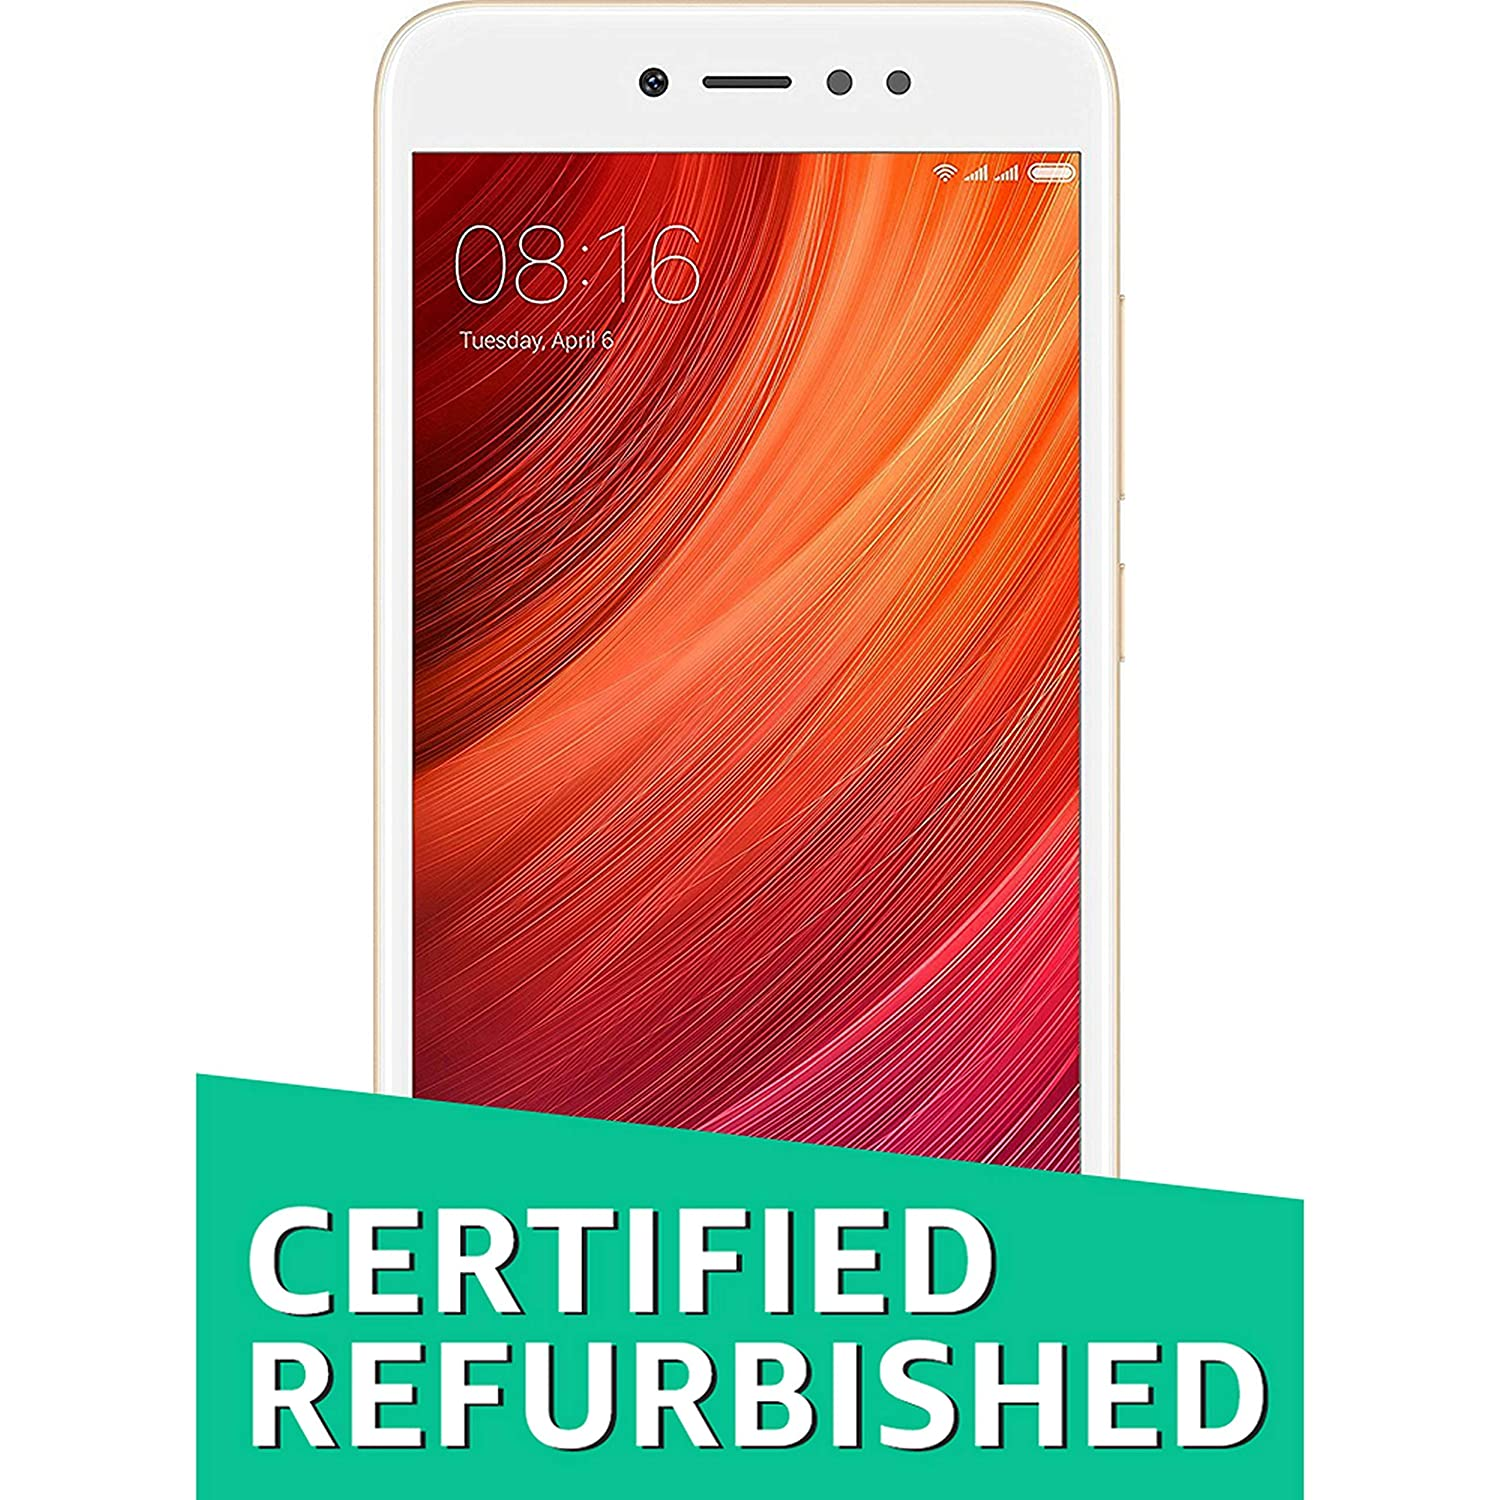 (Certified REFURBISHED) Mi Redmi Y1 (Gold, 64GB)